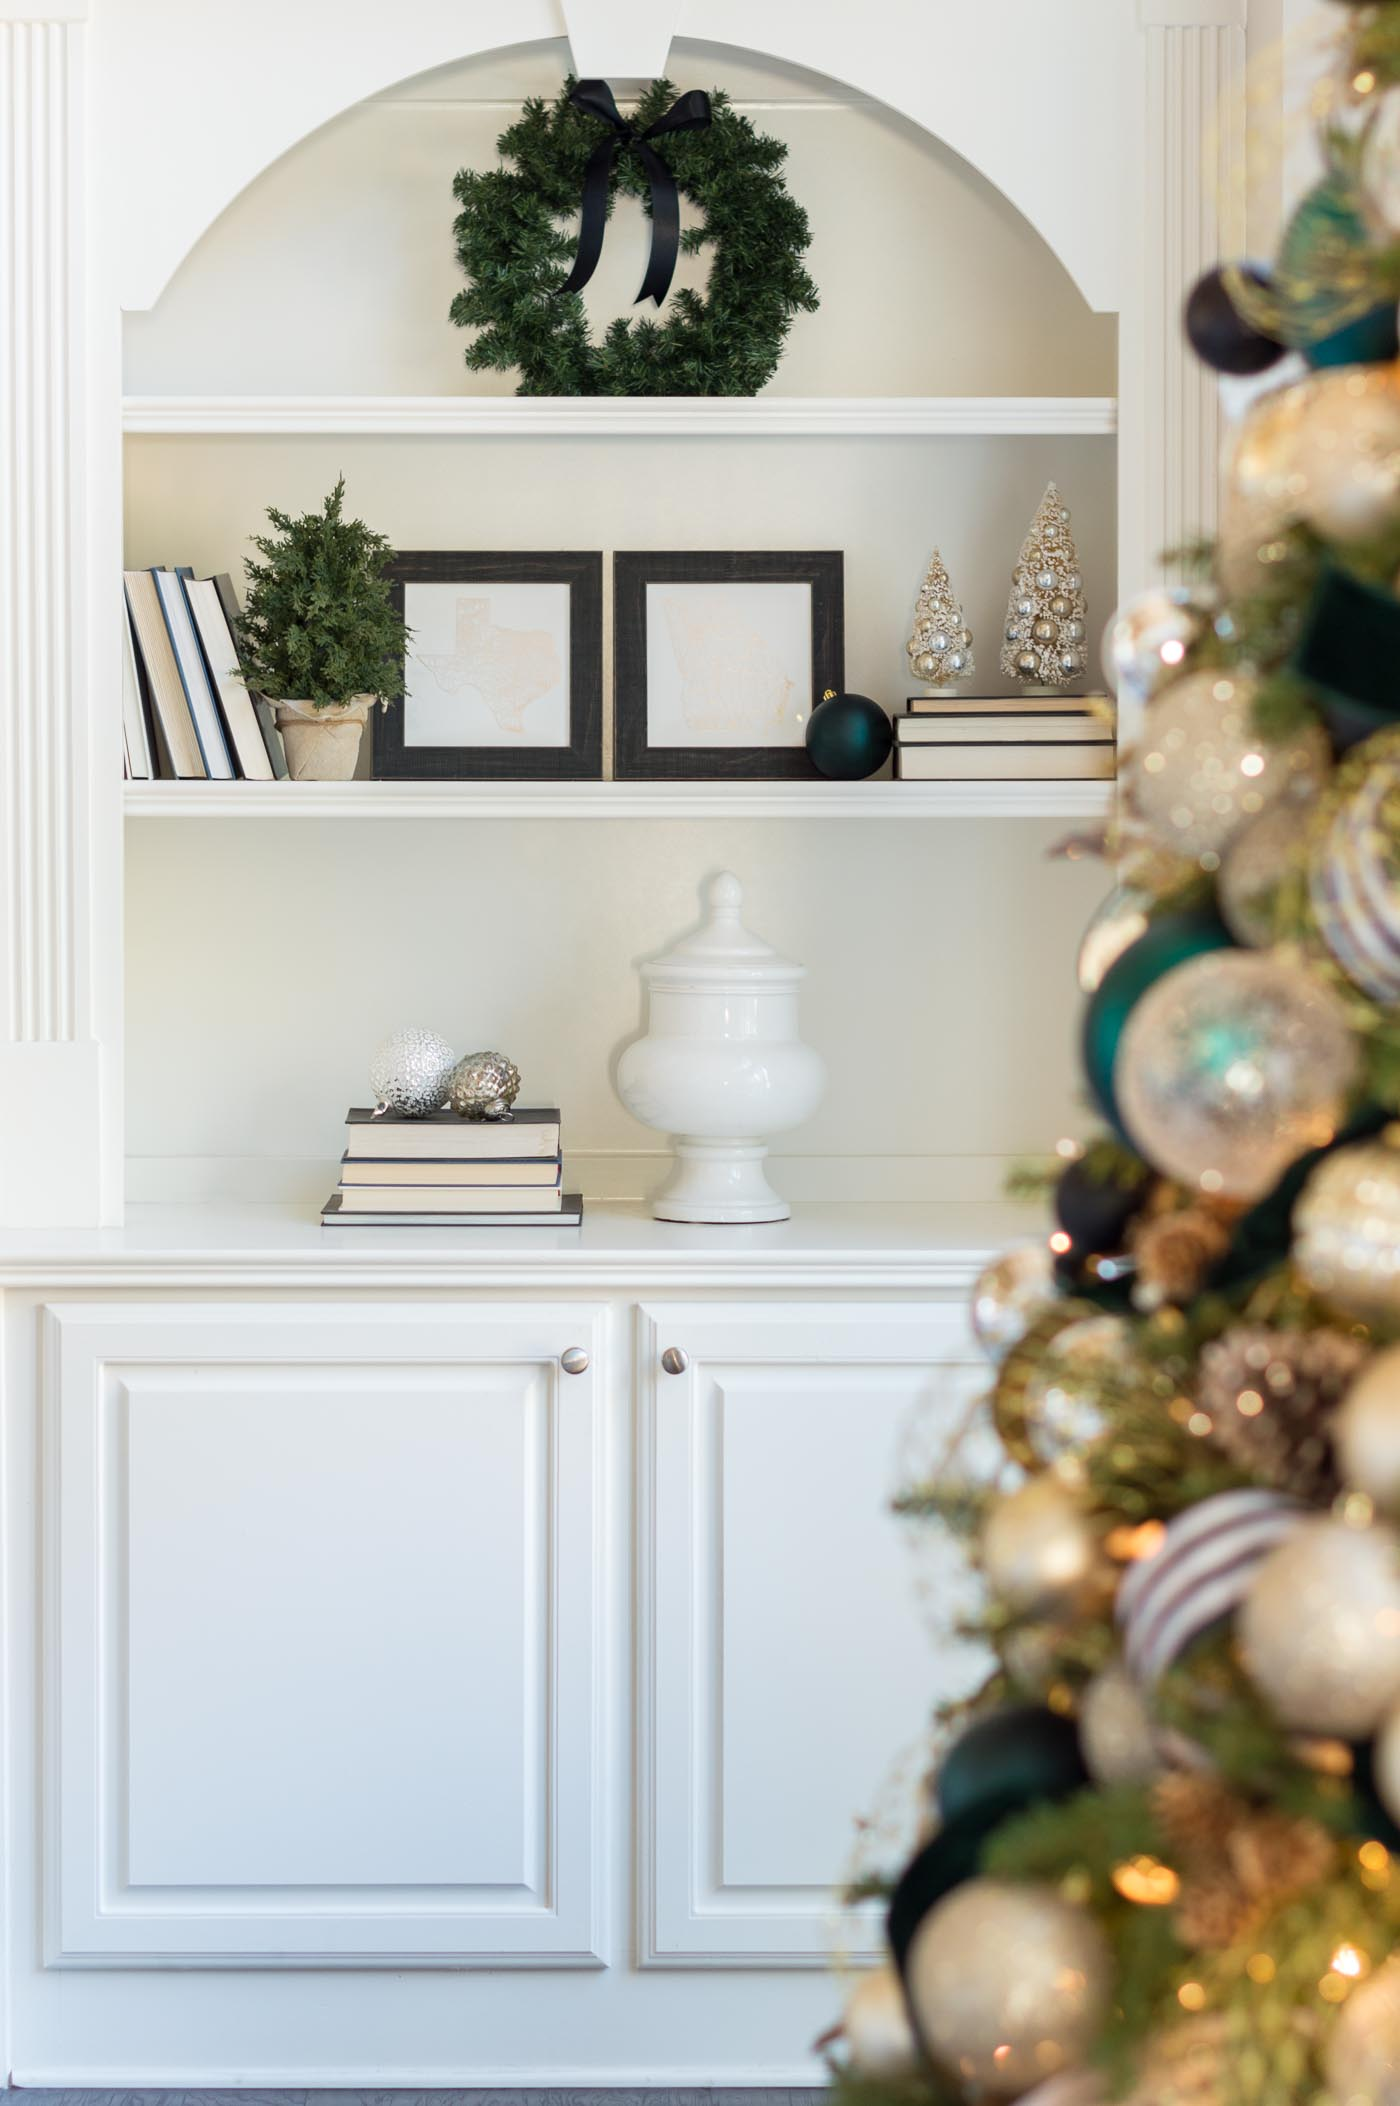 Christmas bookshelf styling